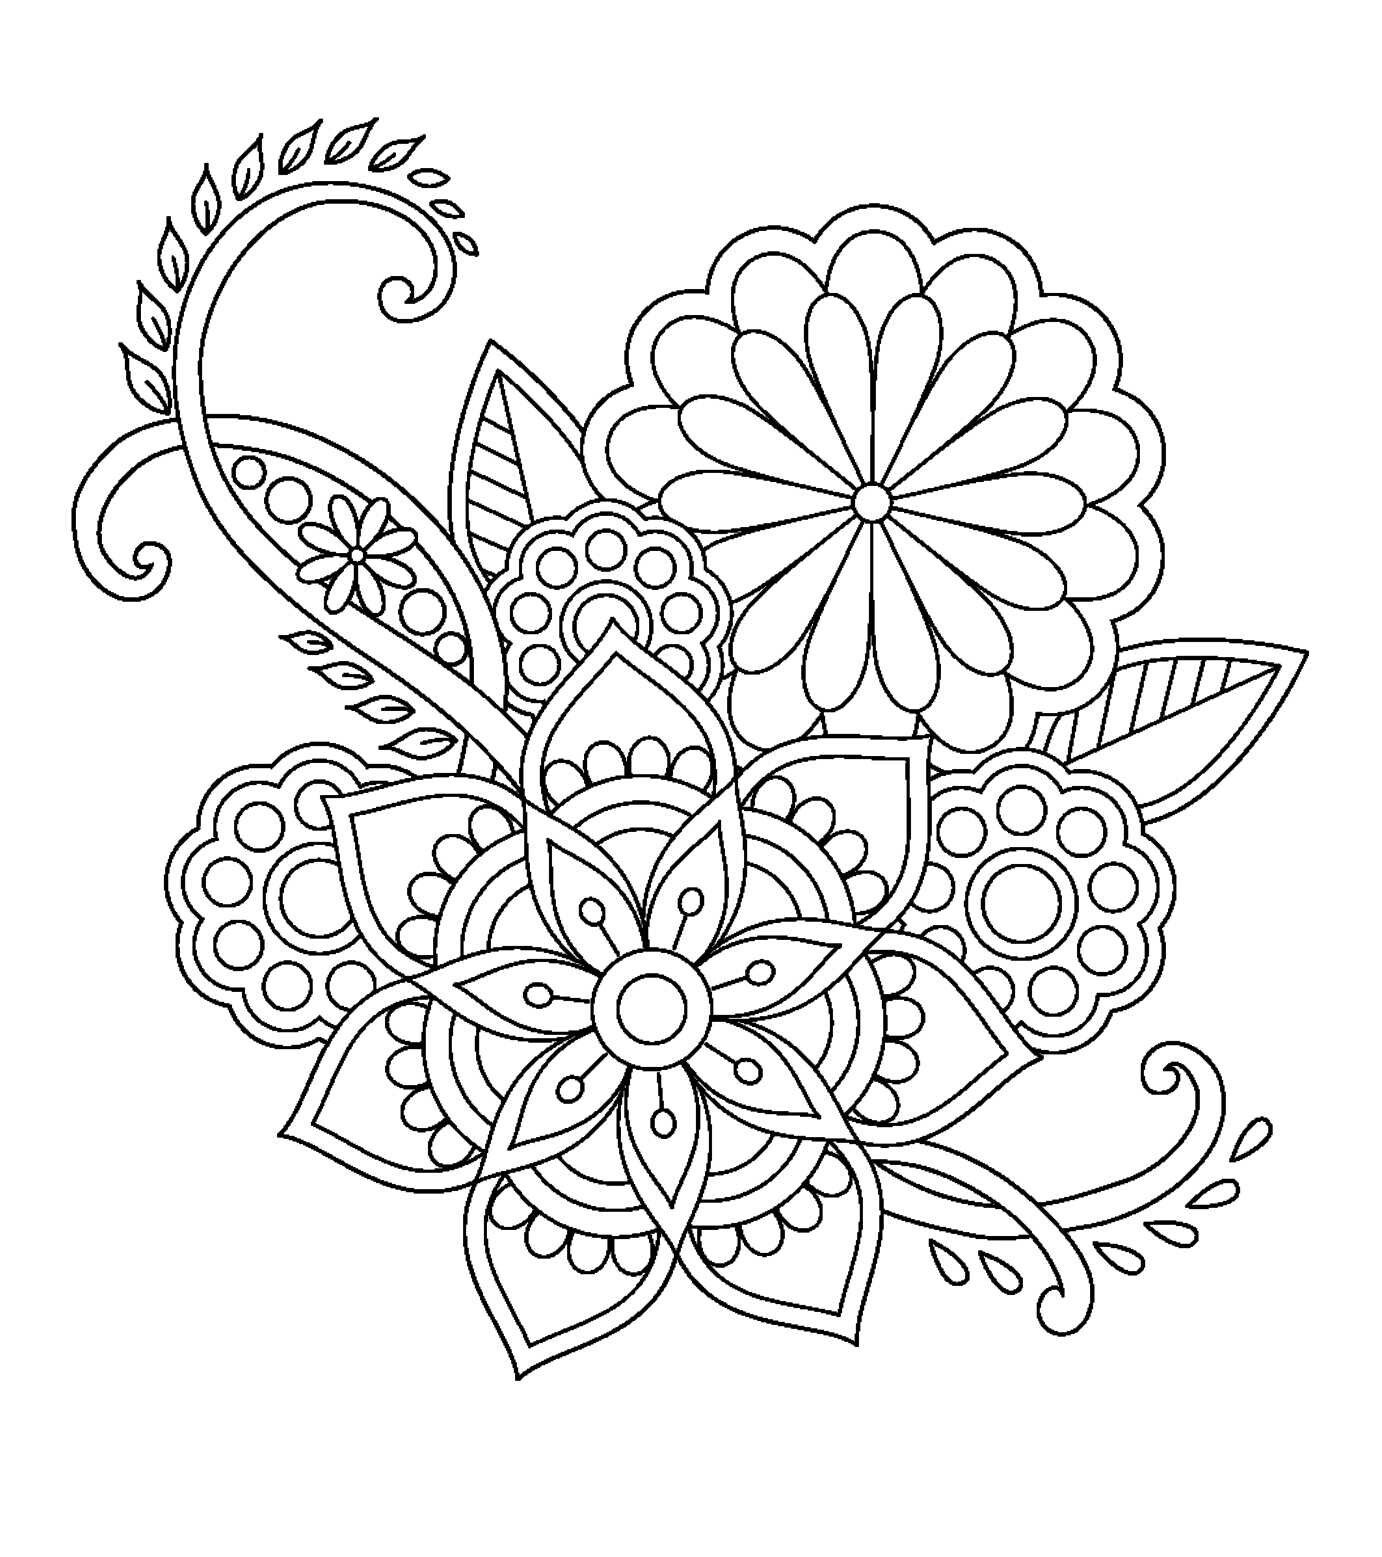 Pin by brendaly s on art pinterest mandala embroidery and doodles adult coloring coloring pages coloring books mandala design art therapy wood burning art art designs folk embroidery embroidery patterns bankloansurffo Image collections